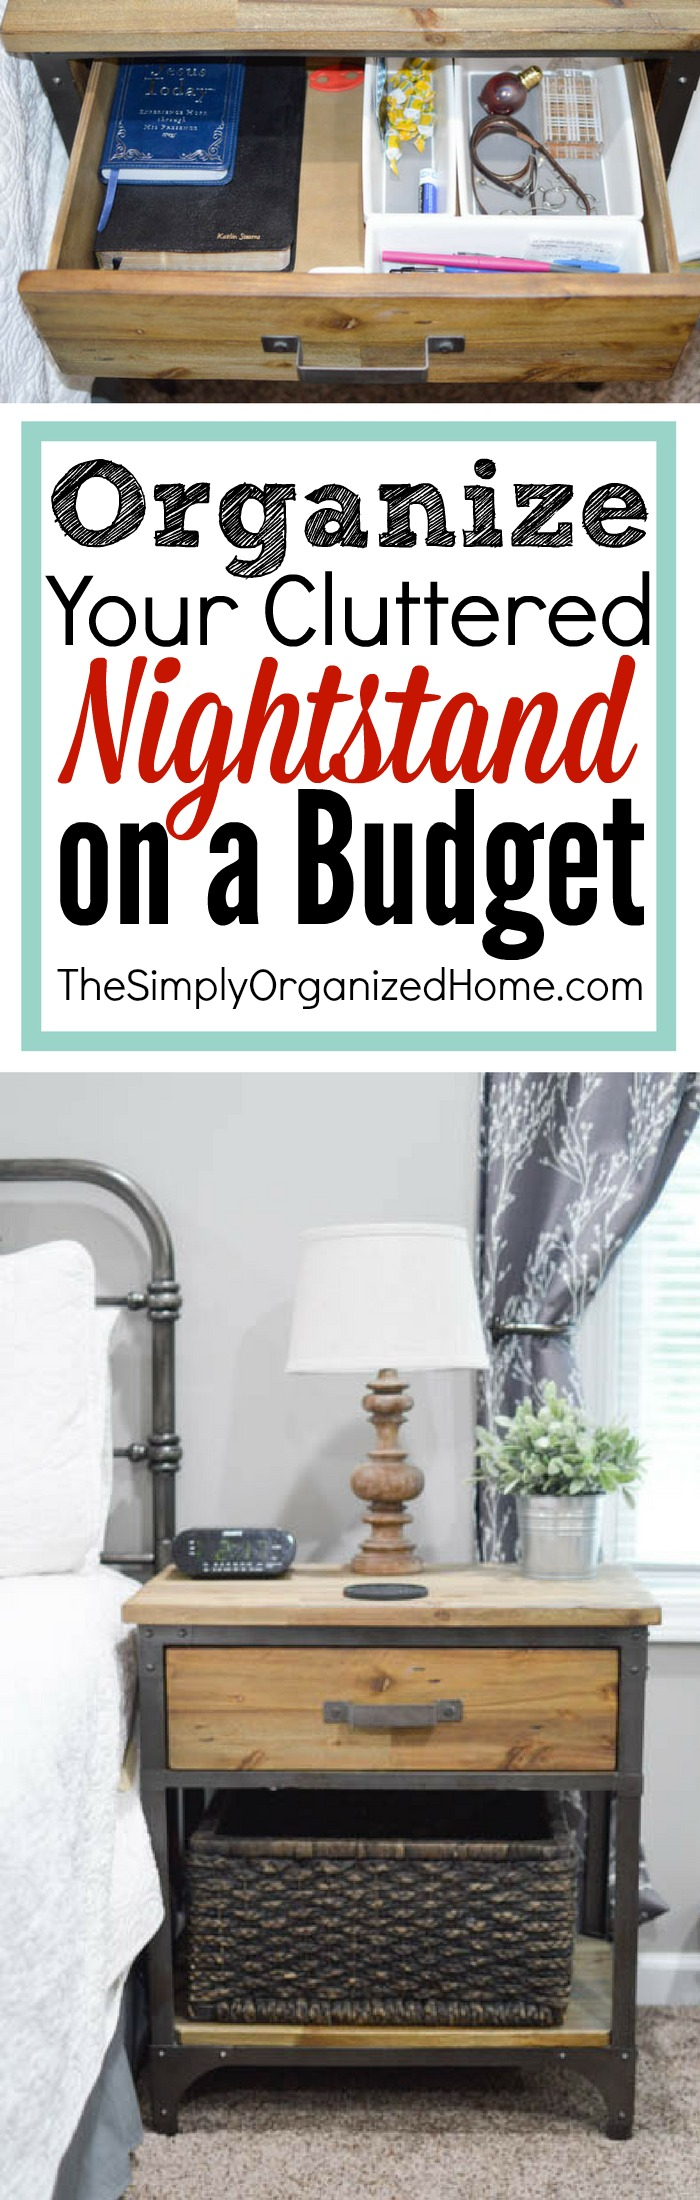 Is your nightstand overly cluttered? It's time to clear out the clutter and get it organized on a budget! Find tons of tips and tricks here.